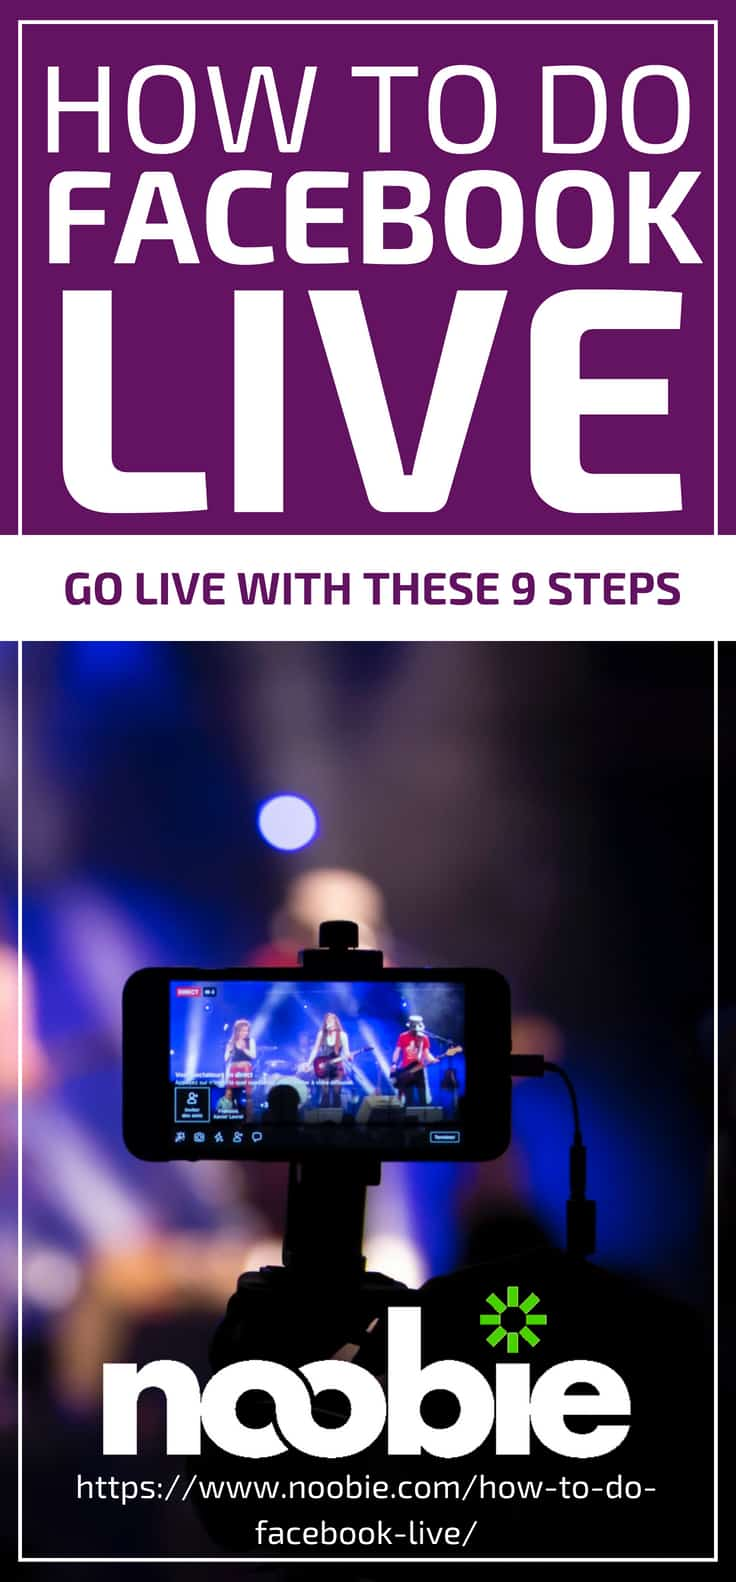 How To Do Facebook Live | Go Live With These 9 Steps | going live on facebook | how to use facebook live | livestream